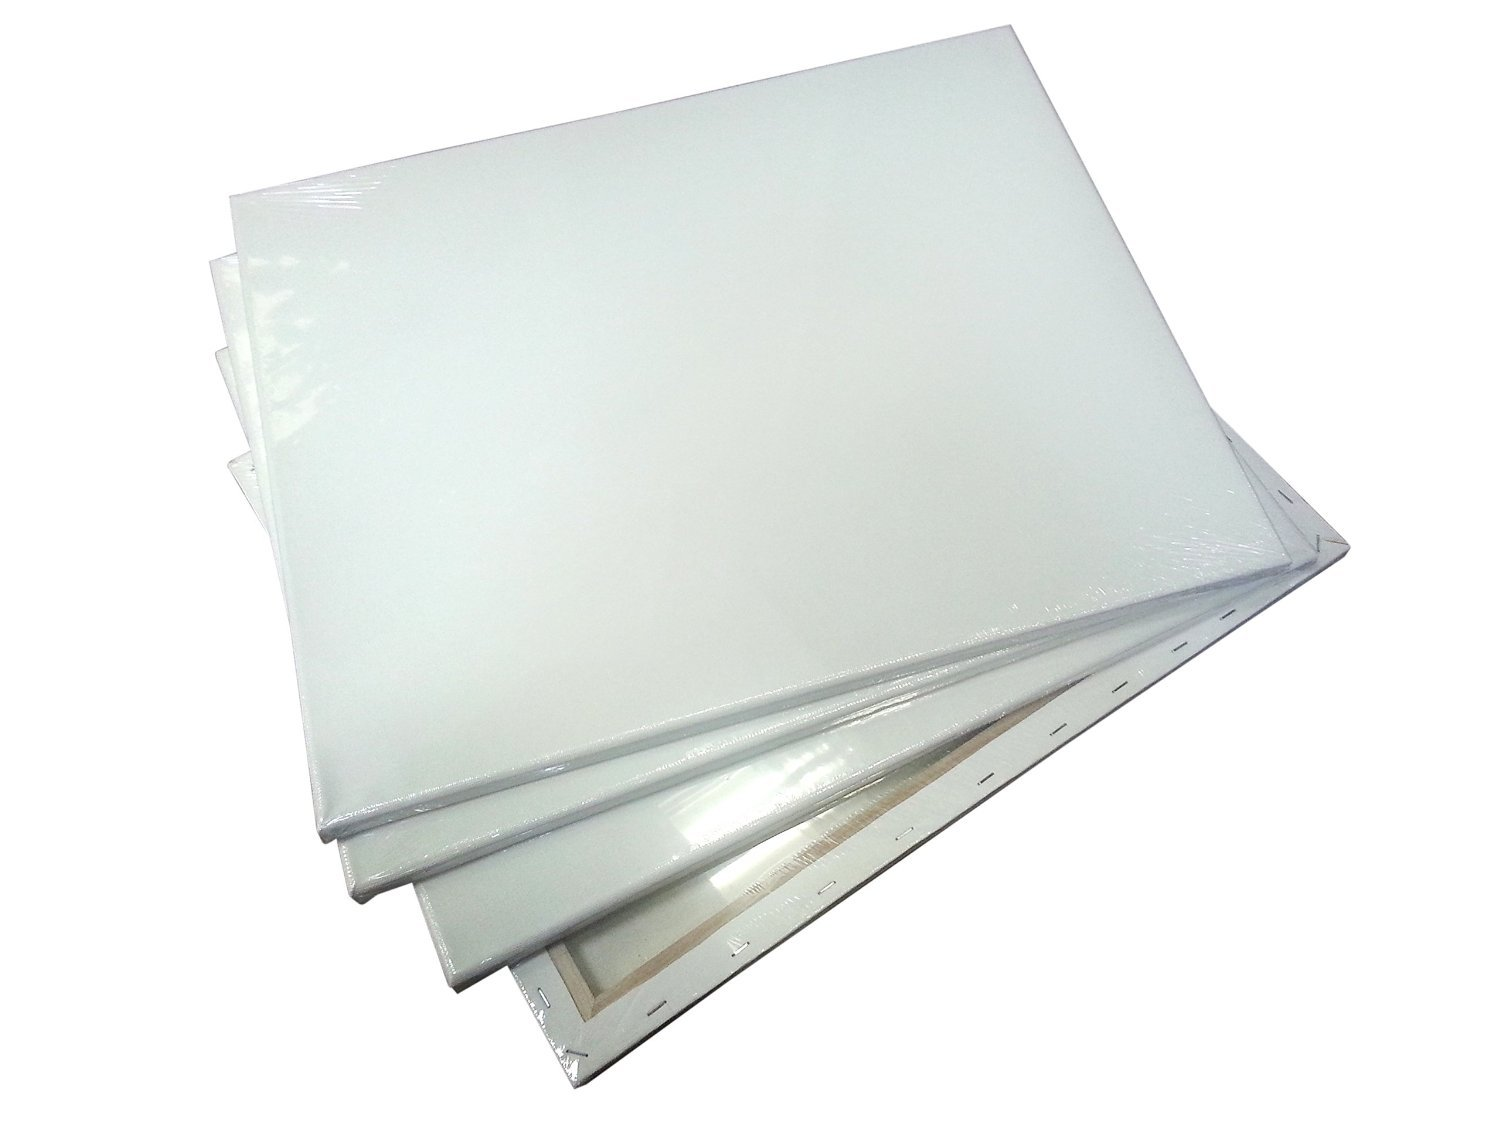 Generic Stretched Canvas, 16'' x 20'' x 3/4'', Box of 16